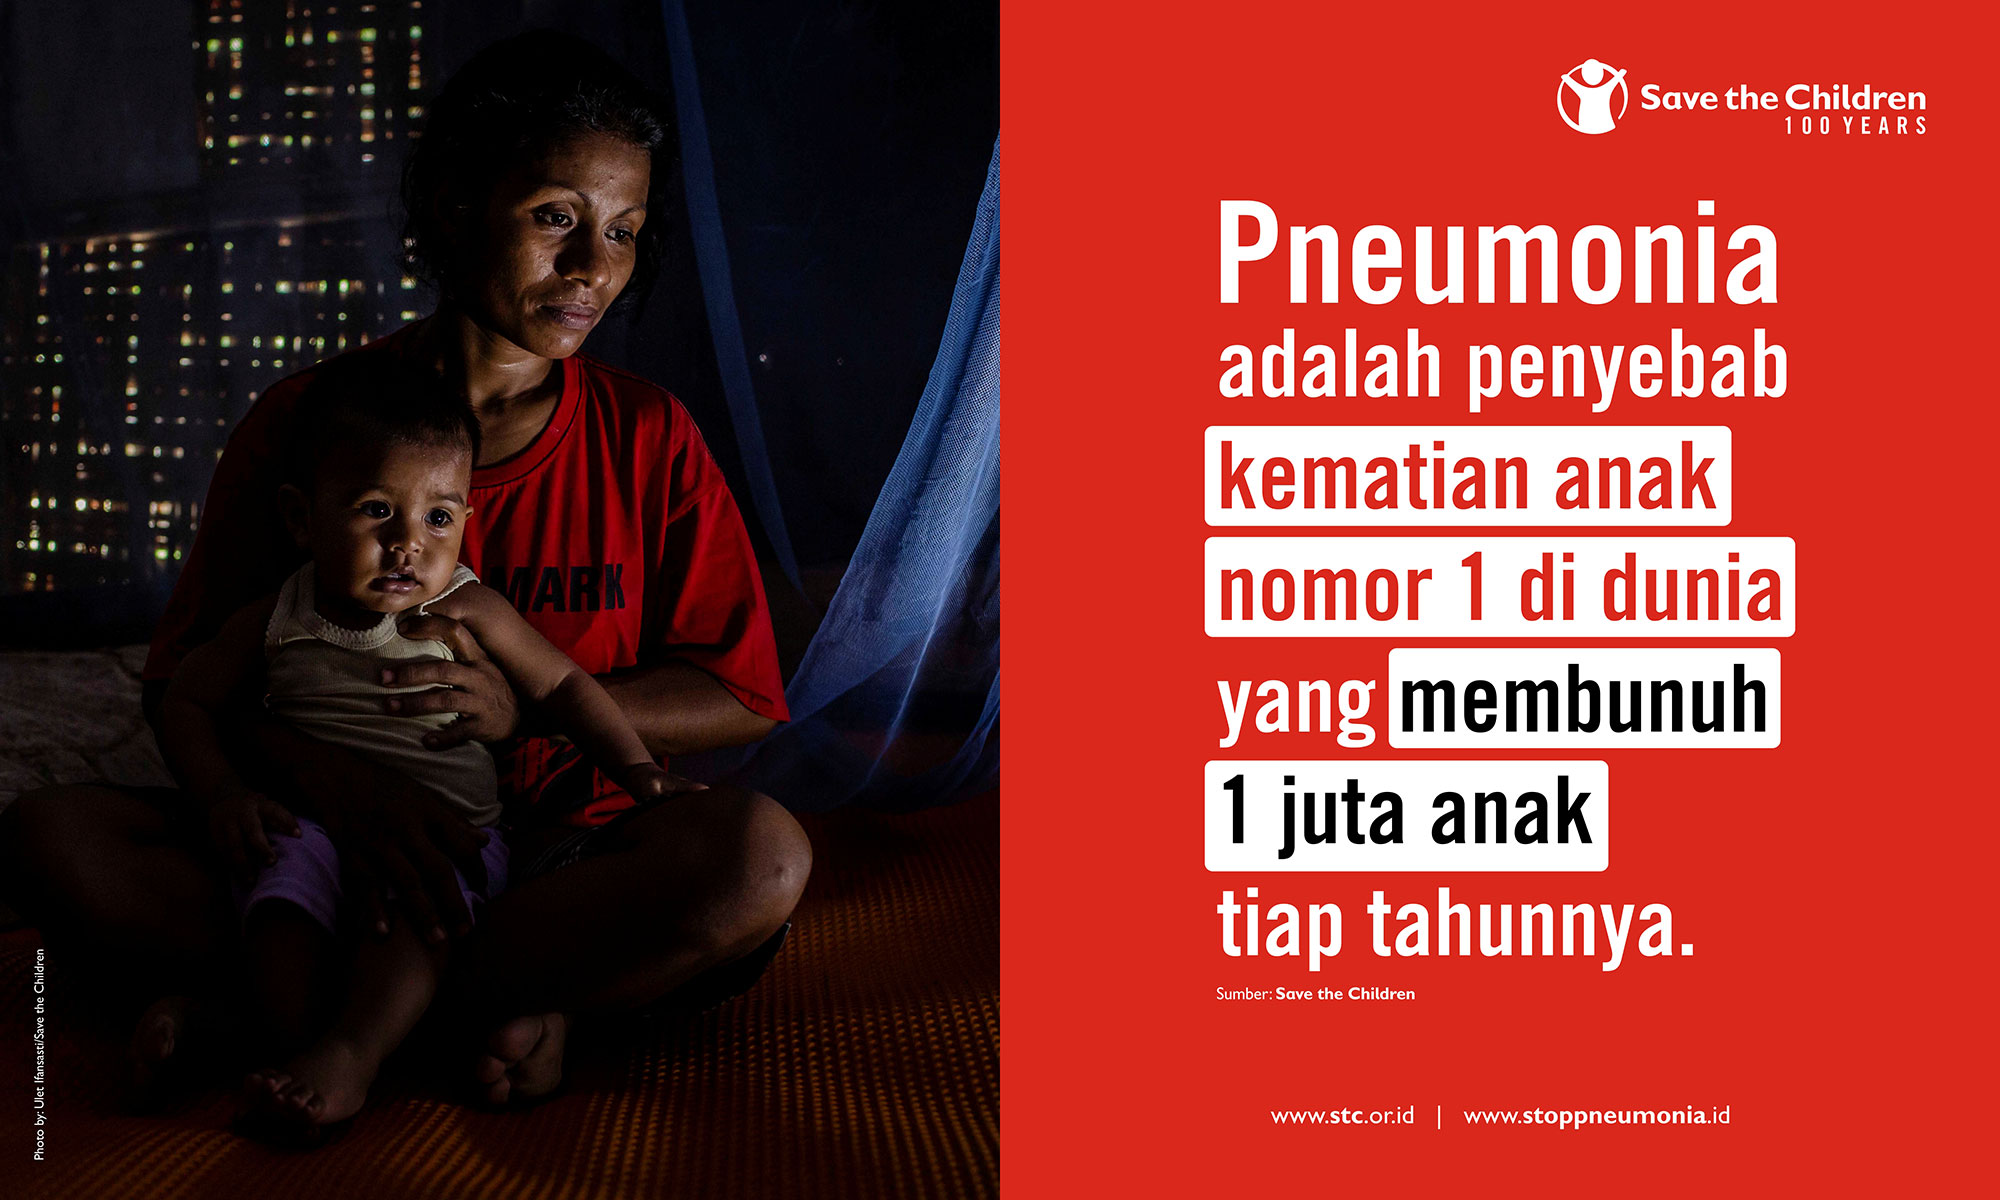 data pneumonia, pneumonia di indonesia, stop pneumonia